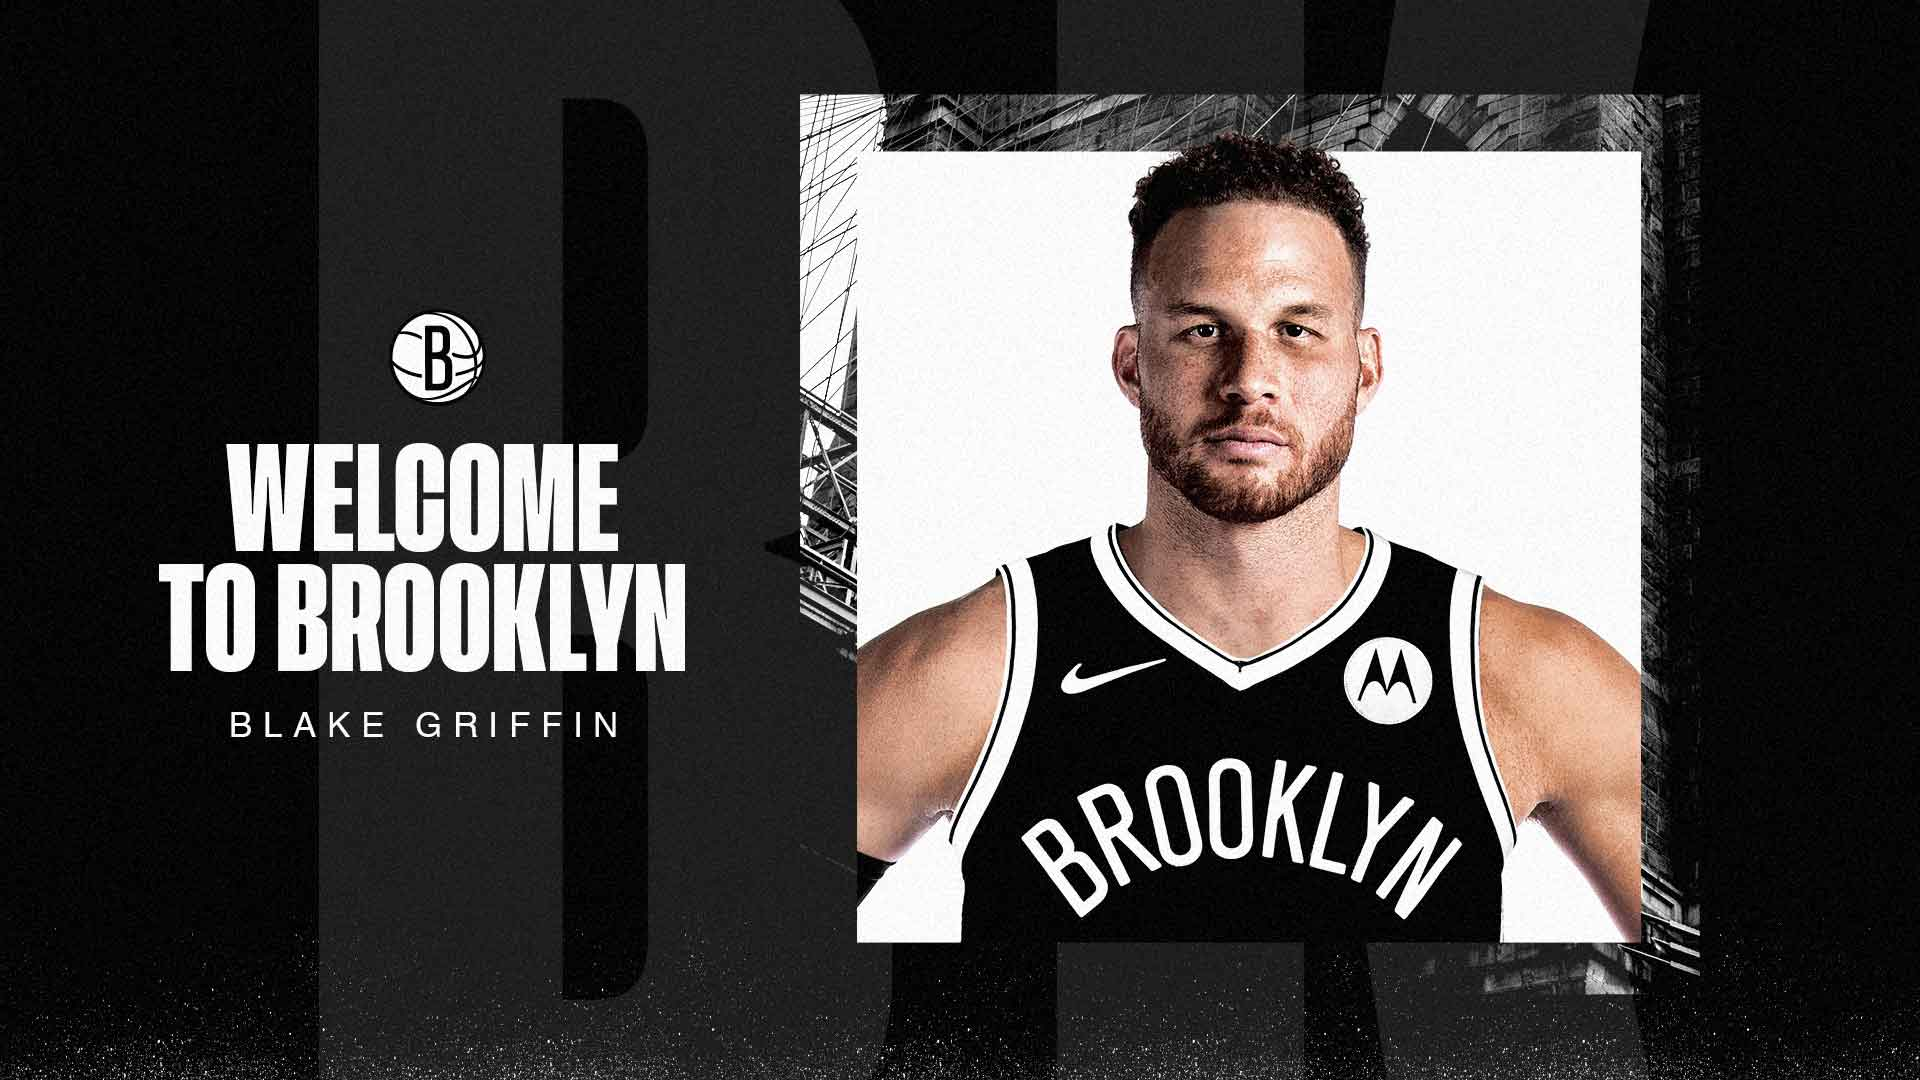 Welcome to BKLYN